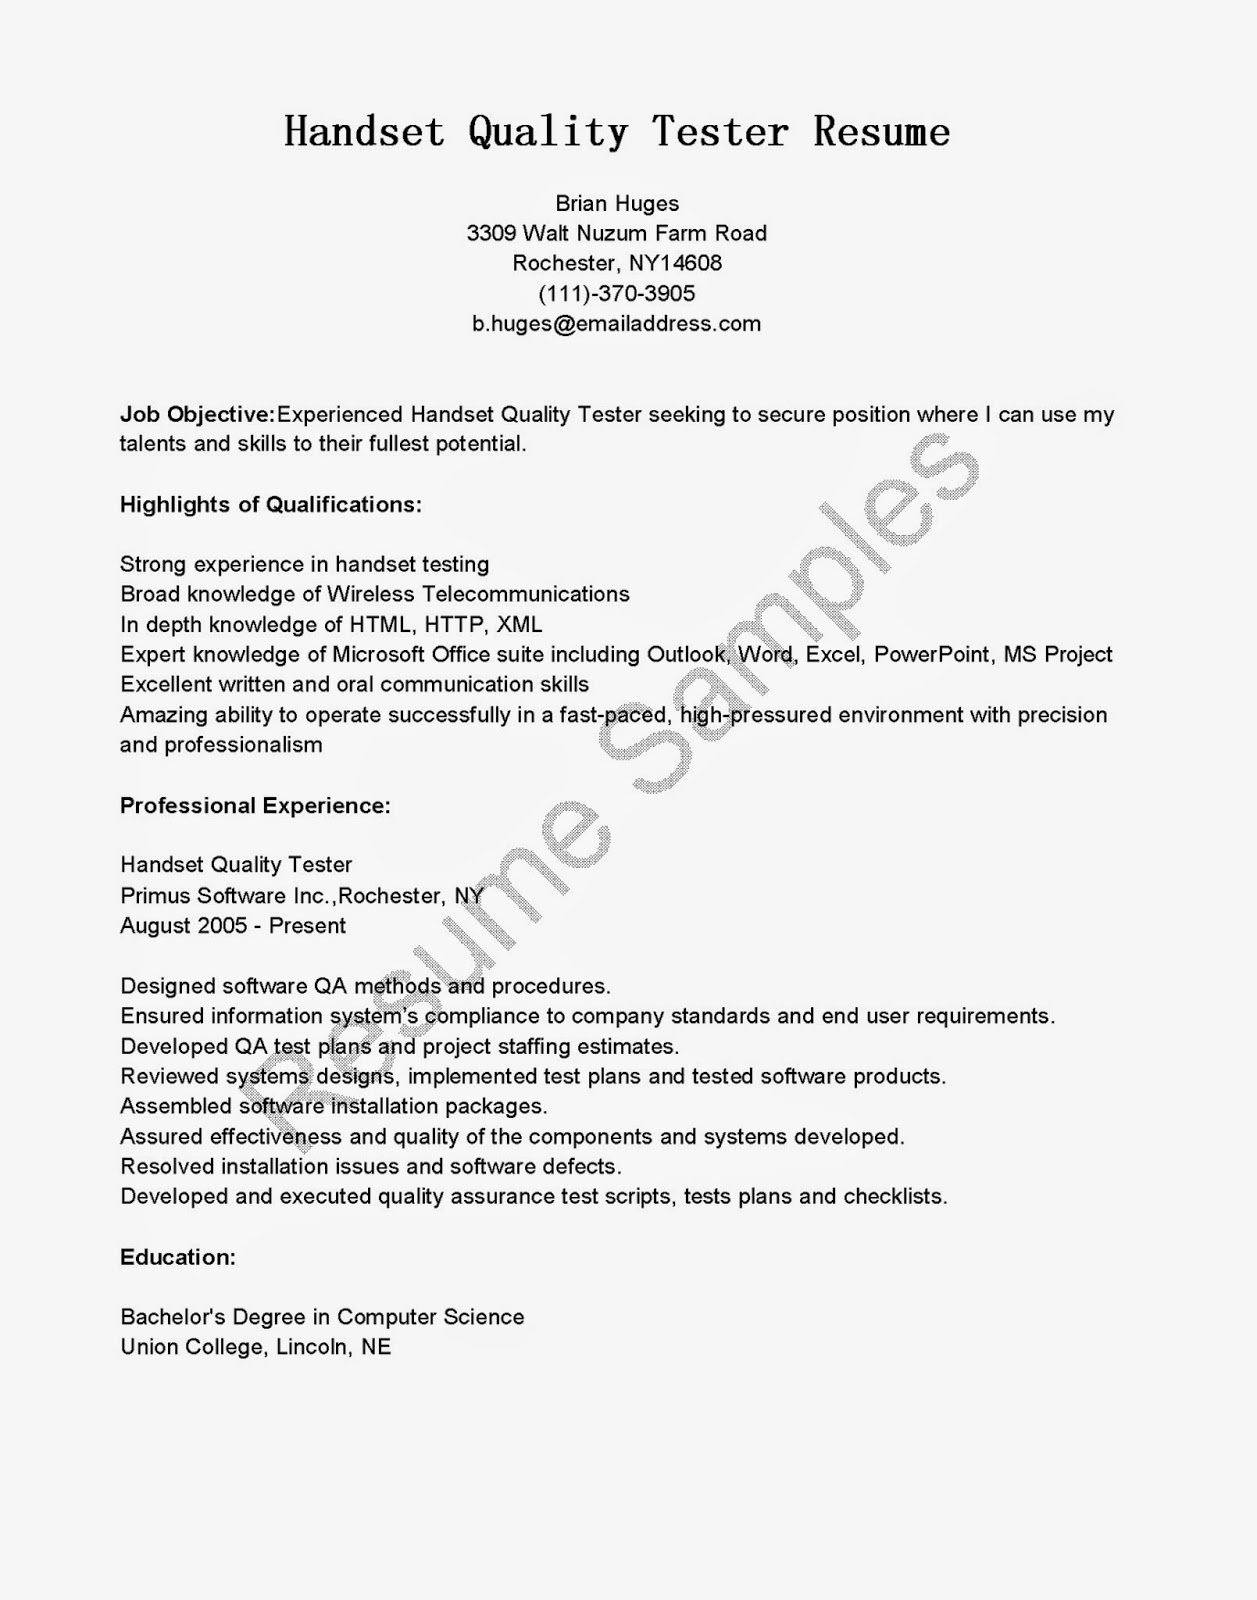 quality assurance resume objective - 28 images - quality assurance ...